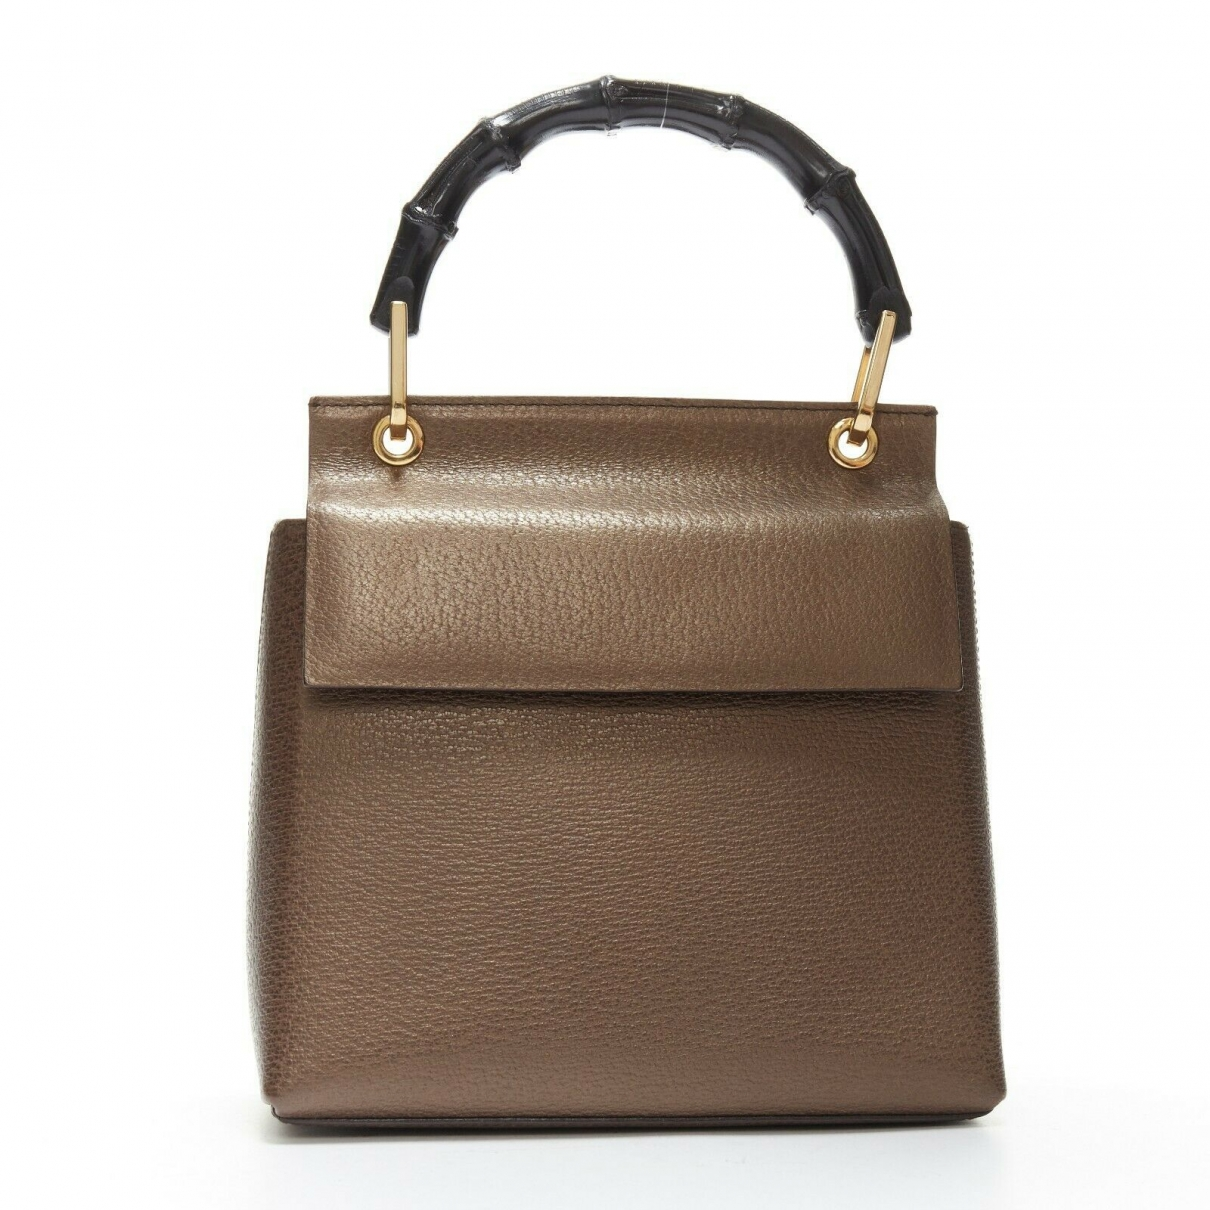 Gucci Bamboo Black Leather handbag for Women \N